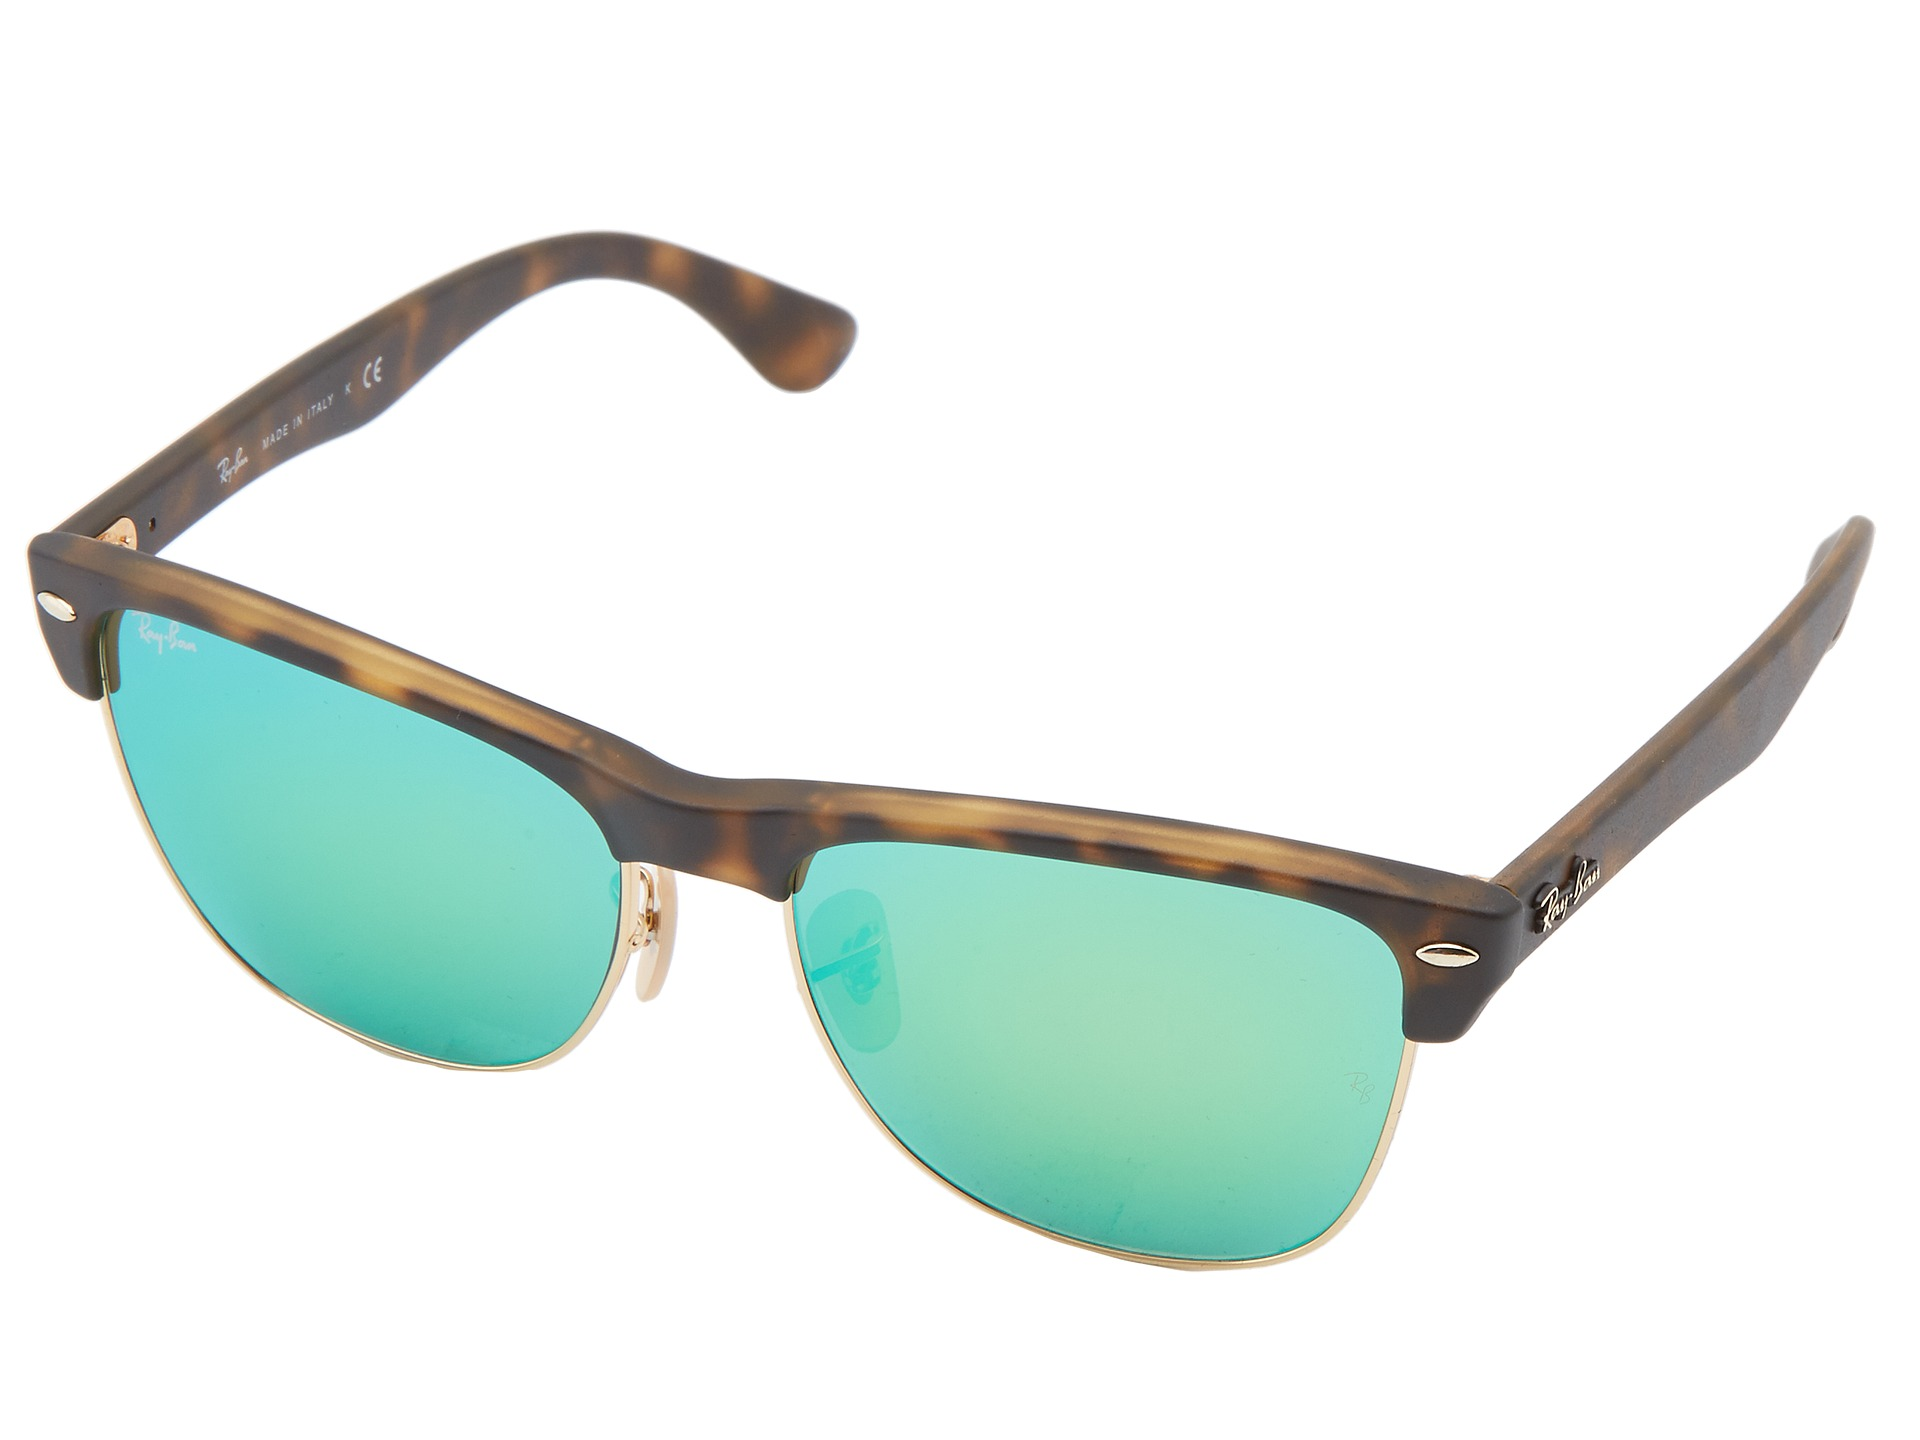 a5d20c7c6b1 Womens Ray Bans Oversized Clubmaster Ray Ban Eyeglasses « Heritage Malta